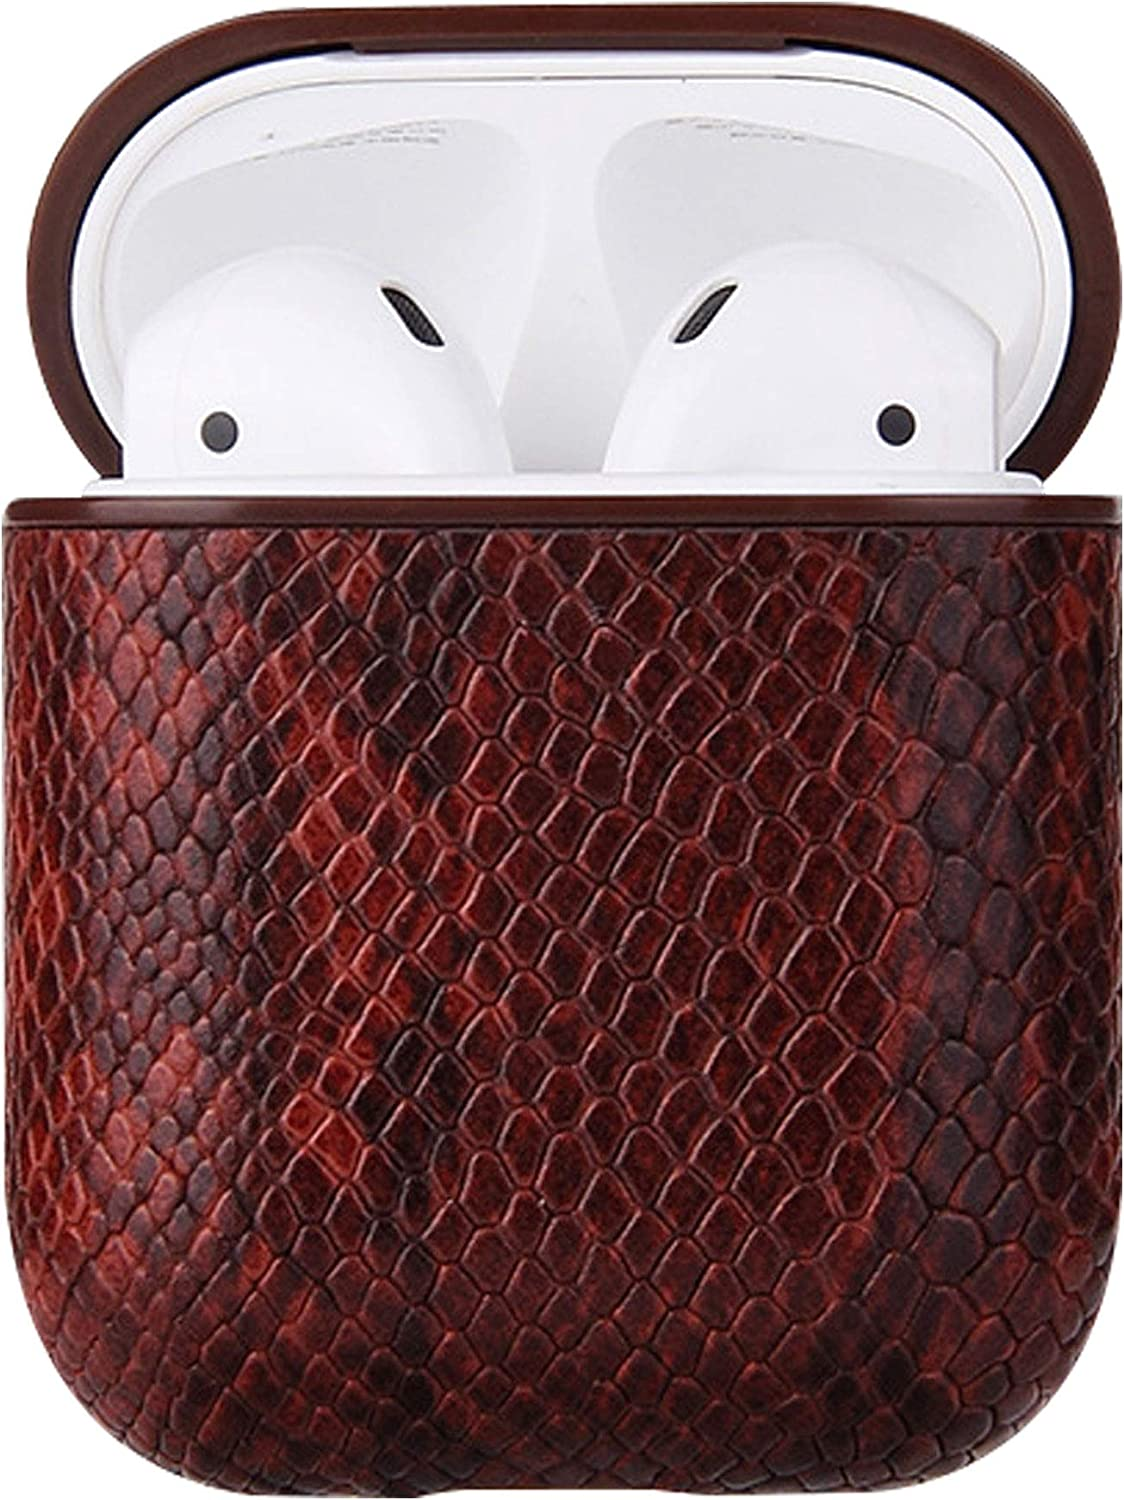 Compatible with Apple Airpod Cases 1/2 Gen (Brown)